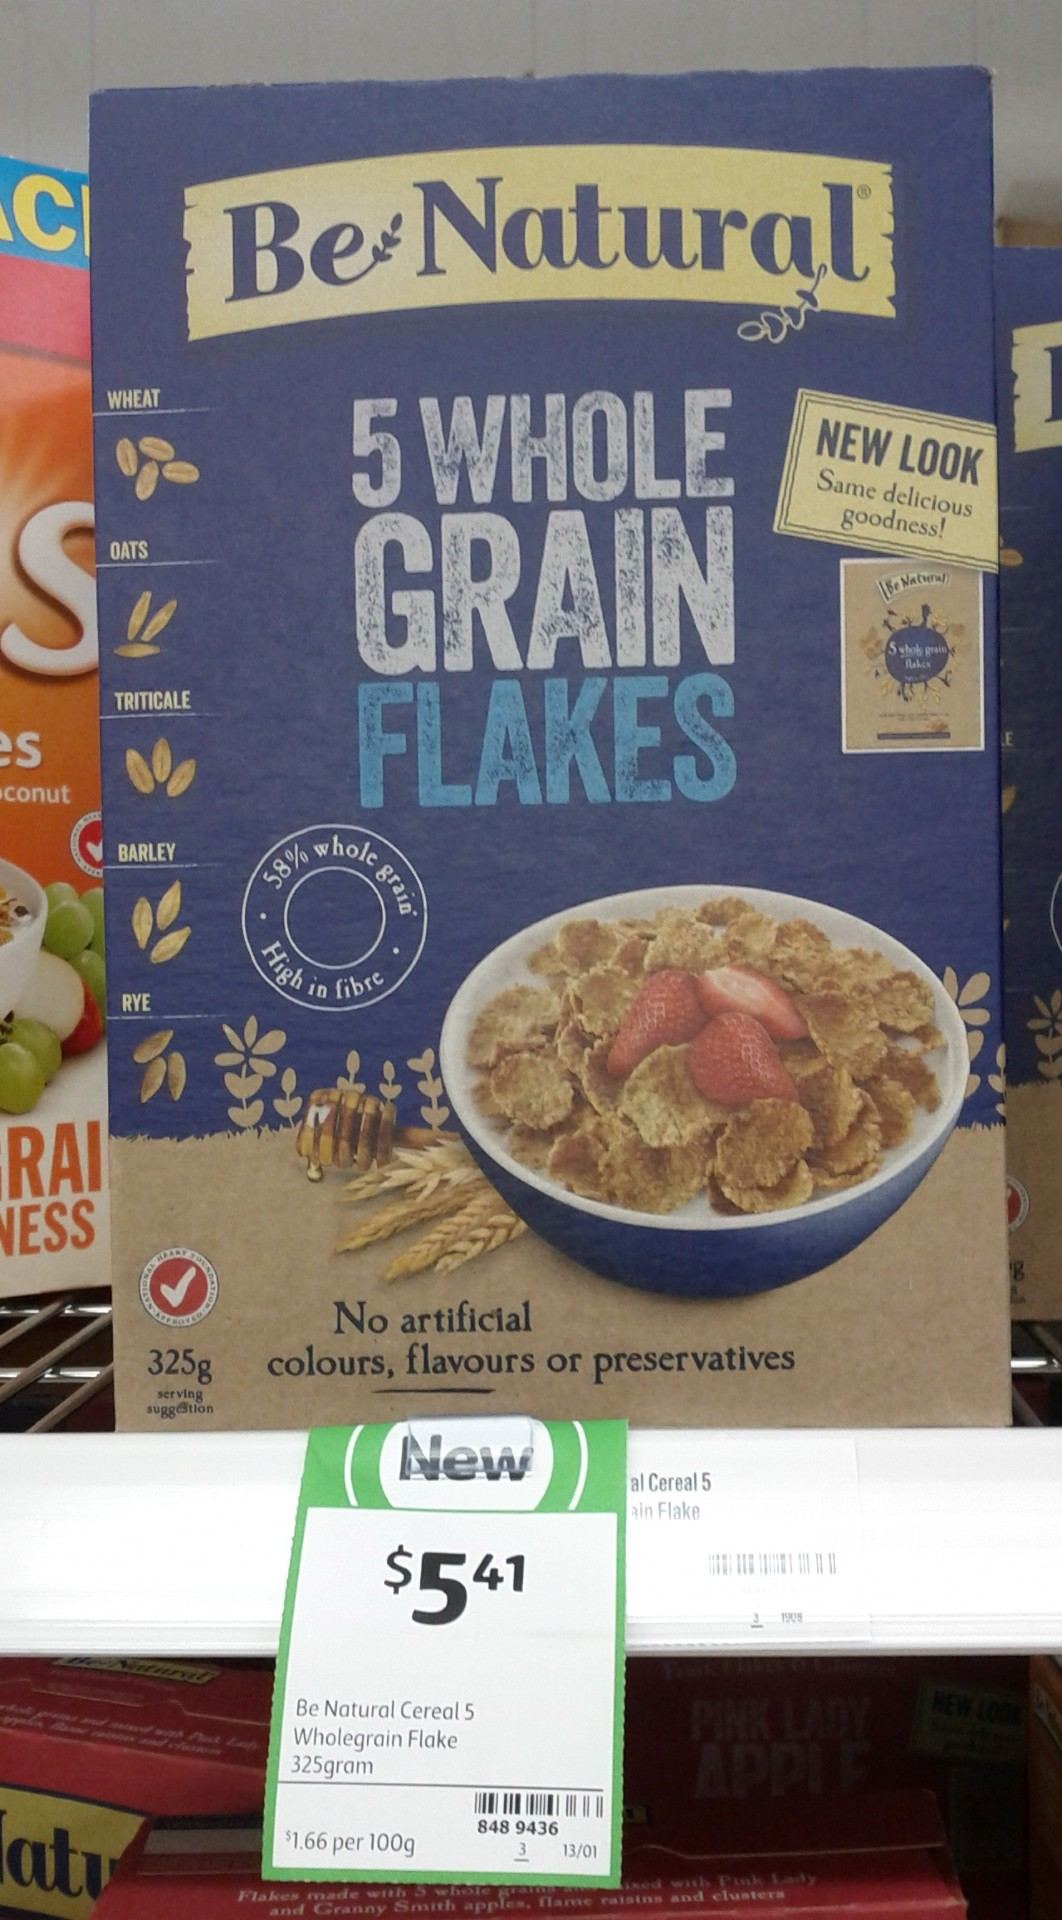 Be Natural 325g 5 Whole Grain Flakes